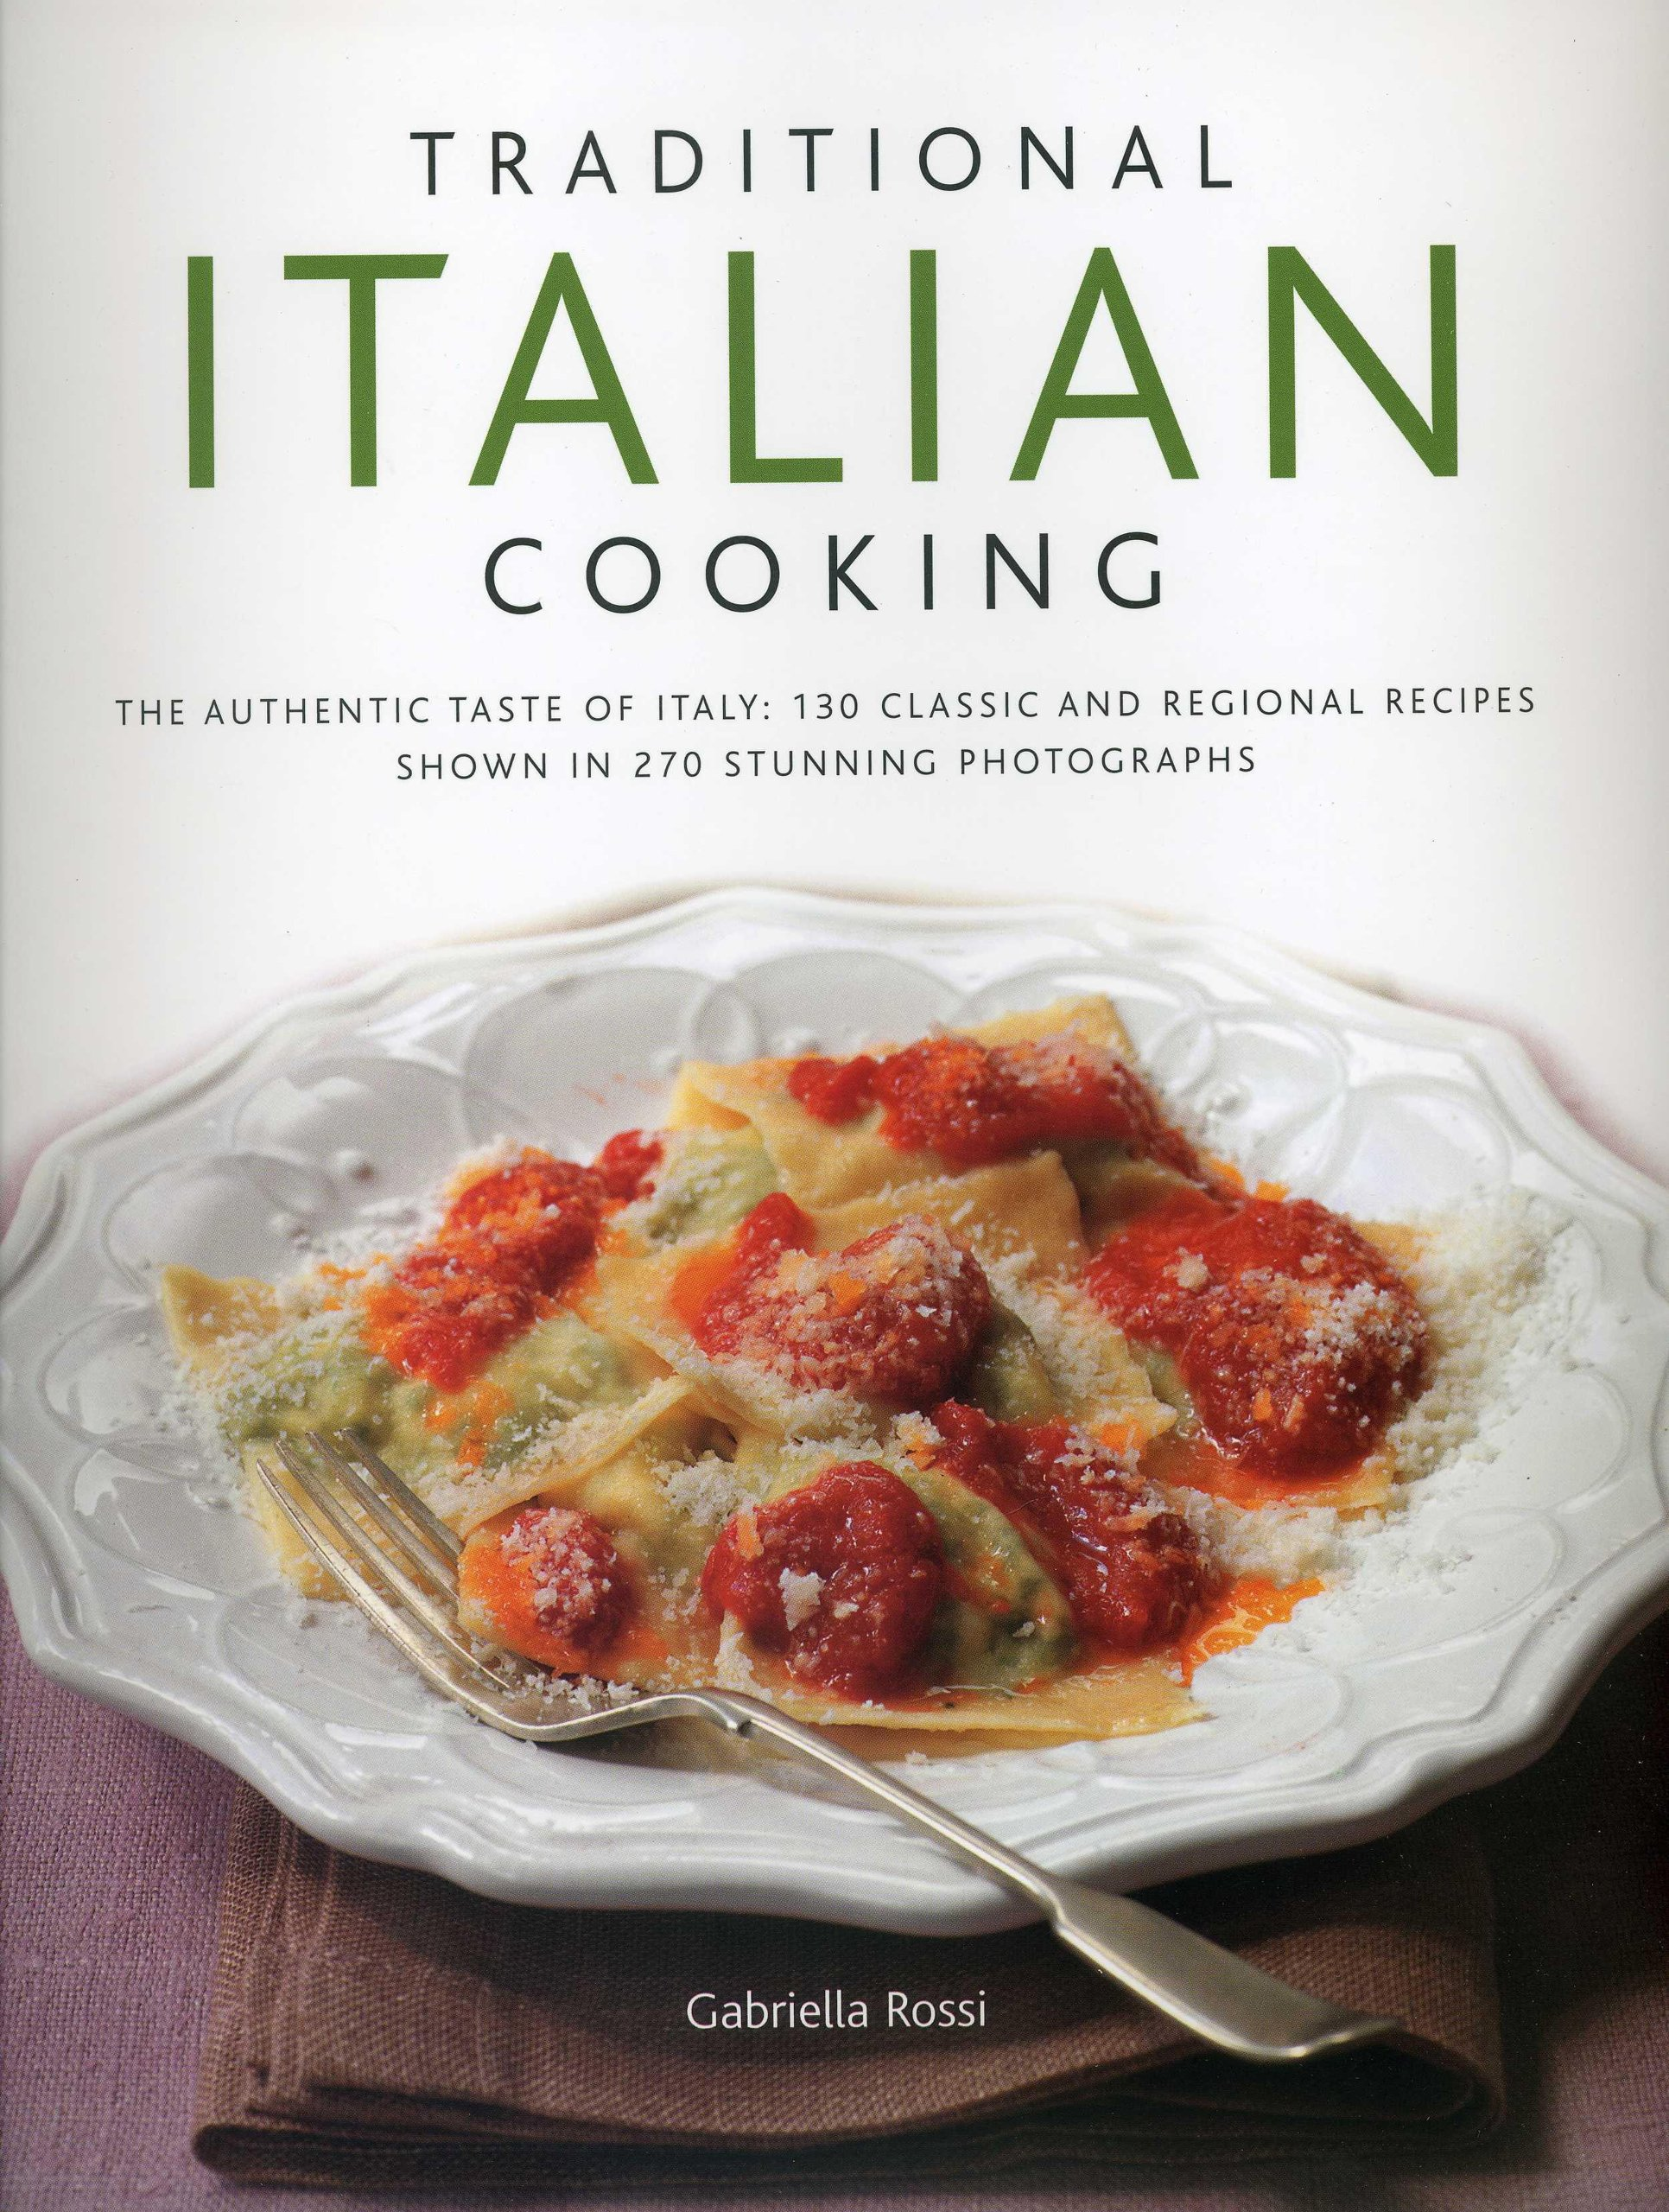 Download Traditional Italian Cooking: The authentic taste of Italy: 130 classic and regional recipes shown in 270 stunning photographs PDF